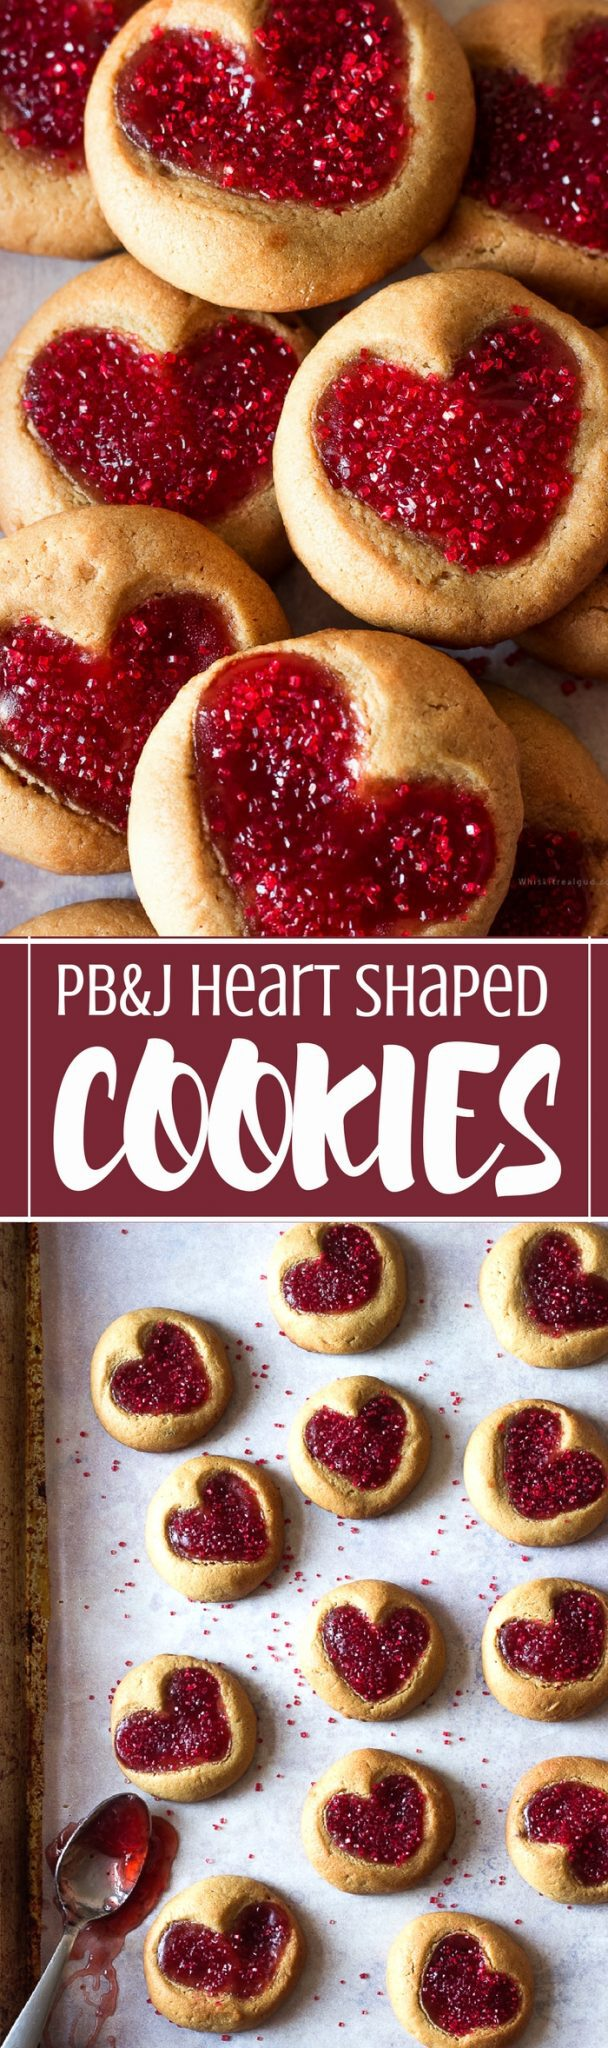 The flavors of classic Peanut butter and Jelly sandwich in a heart shaped cookie form. Soft and chewy peanut butter and jelly shaped cookies are so easy and fun to make. Kids love them!